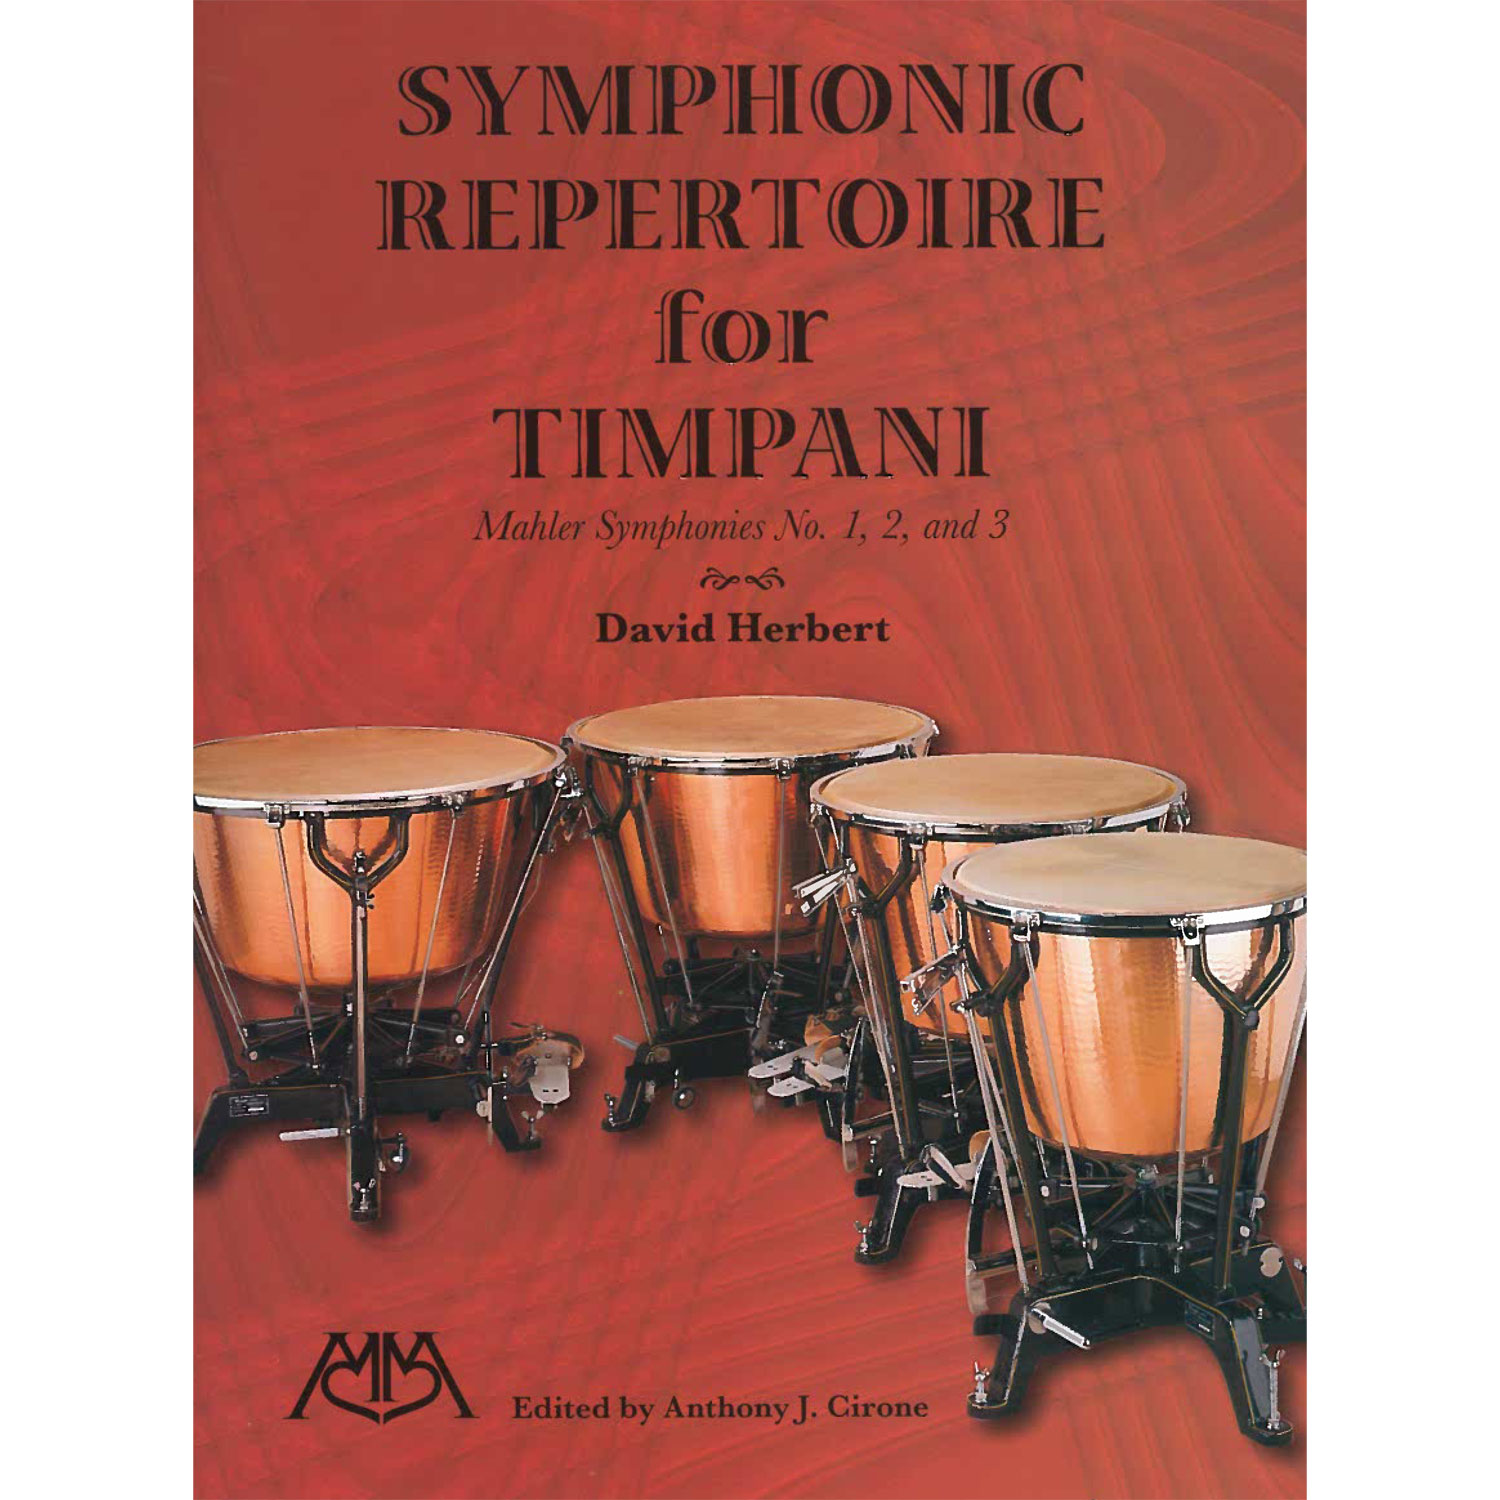 Symphonic Repertoire for Timpani:  Mahler Symphonies 1-3 by David Herbert ed. Cirone